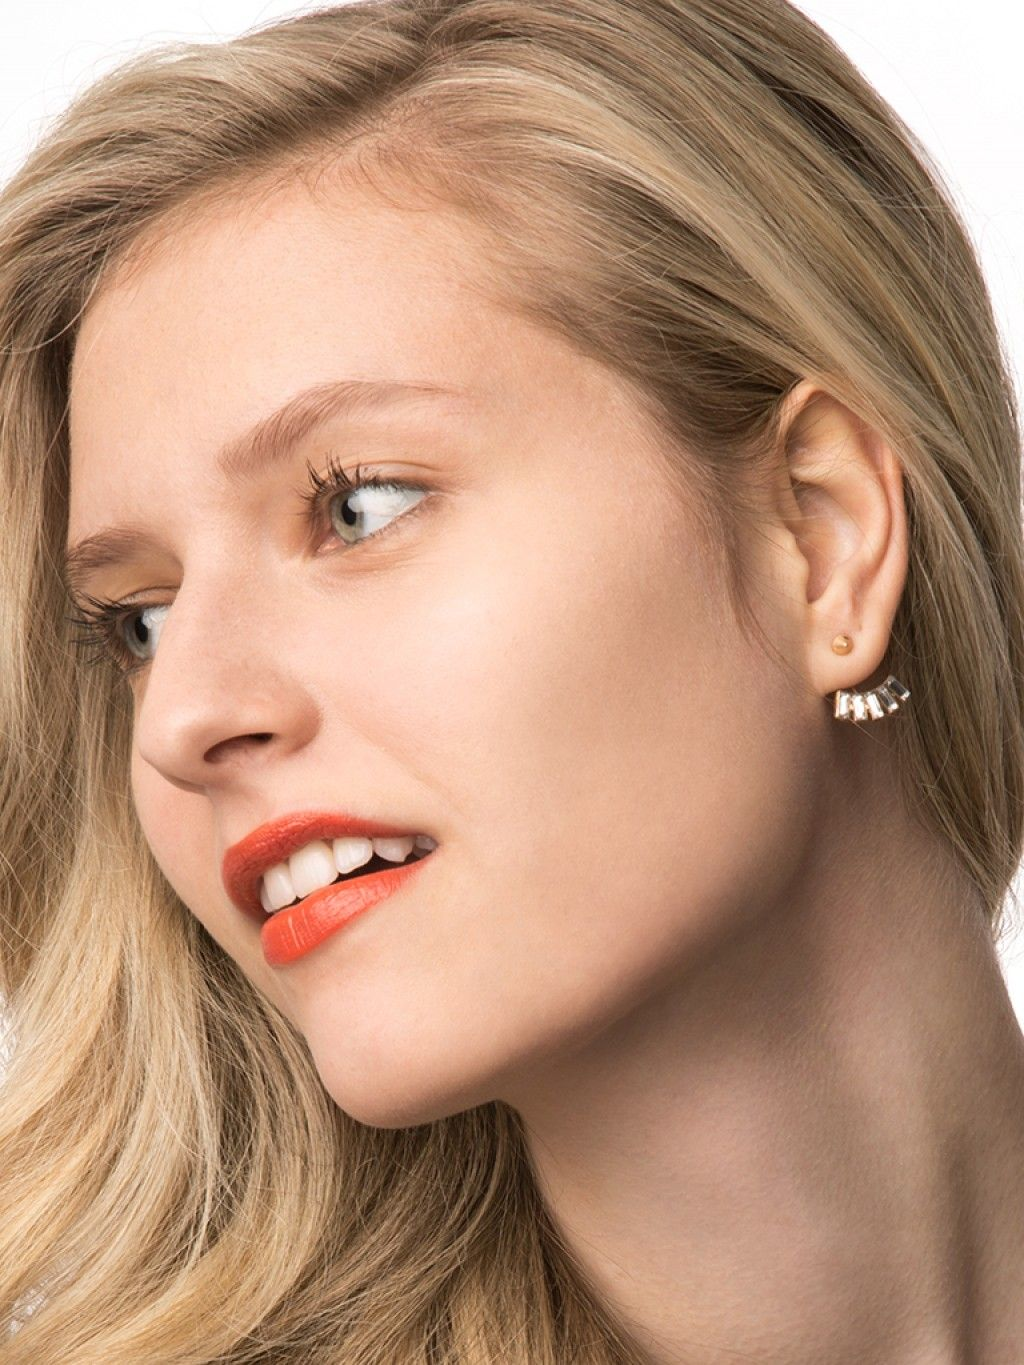 Piercing from nose to ear  Crystal Baguette Ear Jackets Earring  BaubleBar  accessories